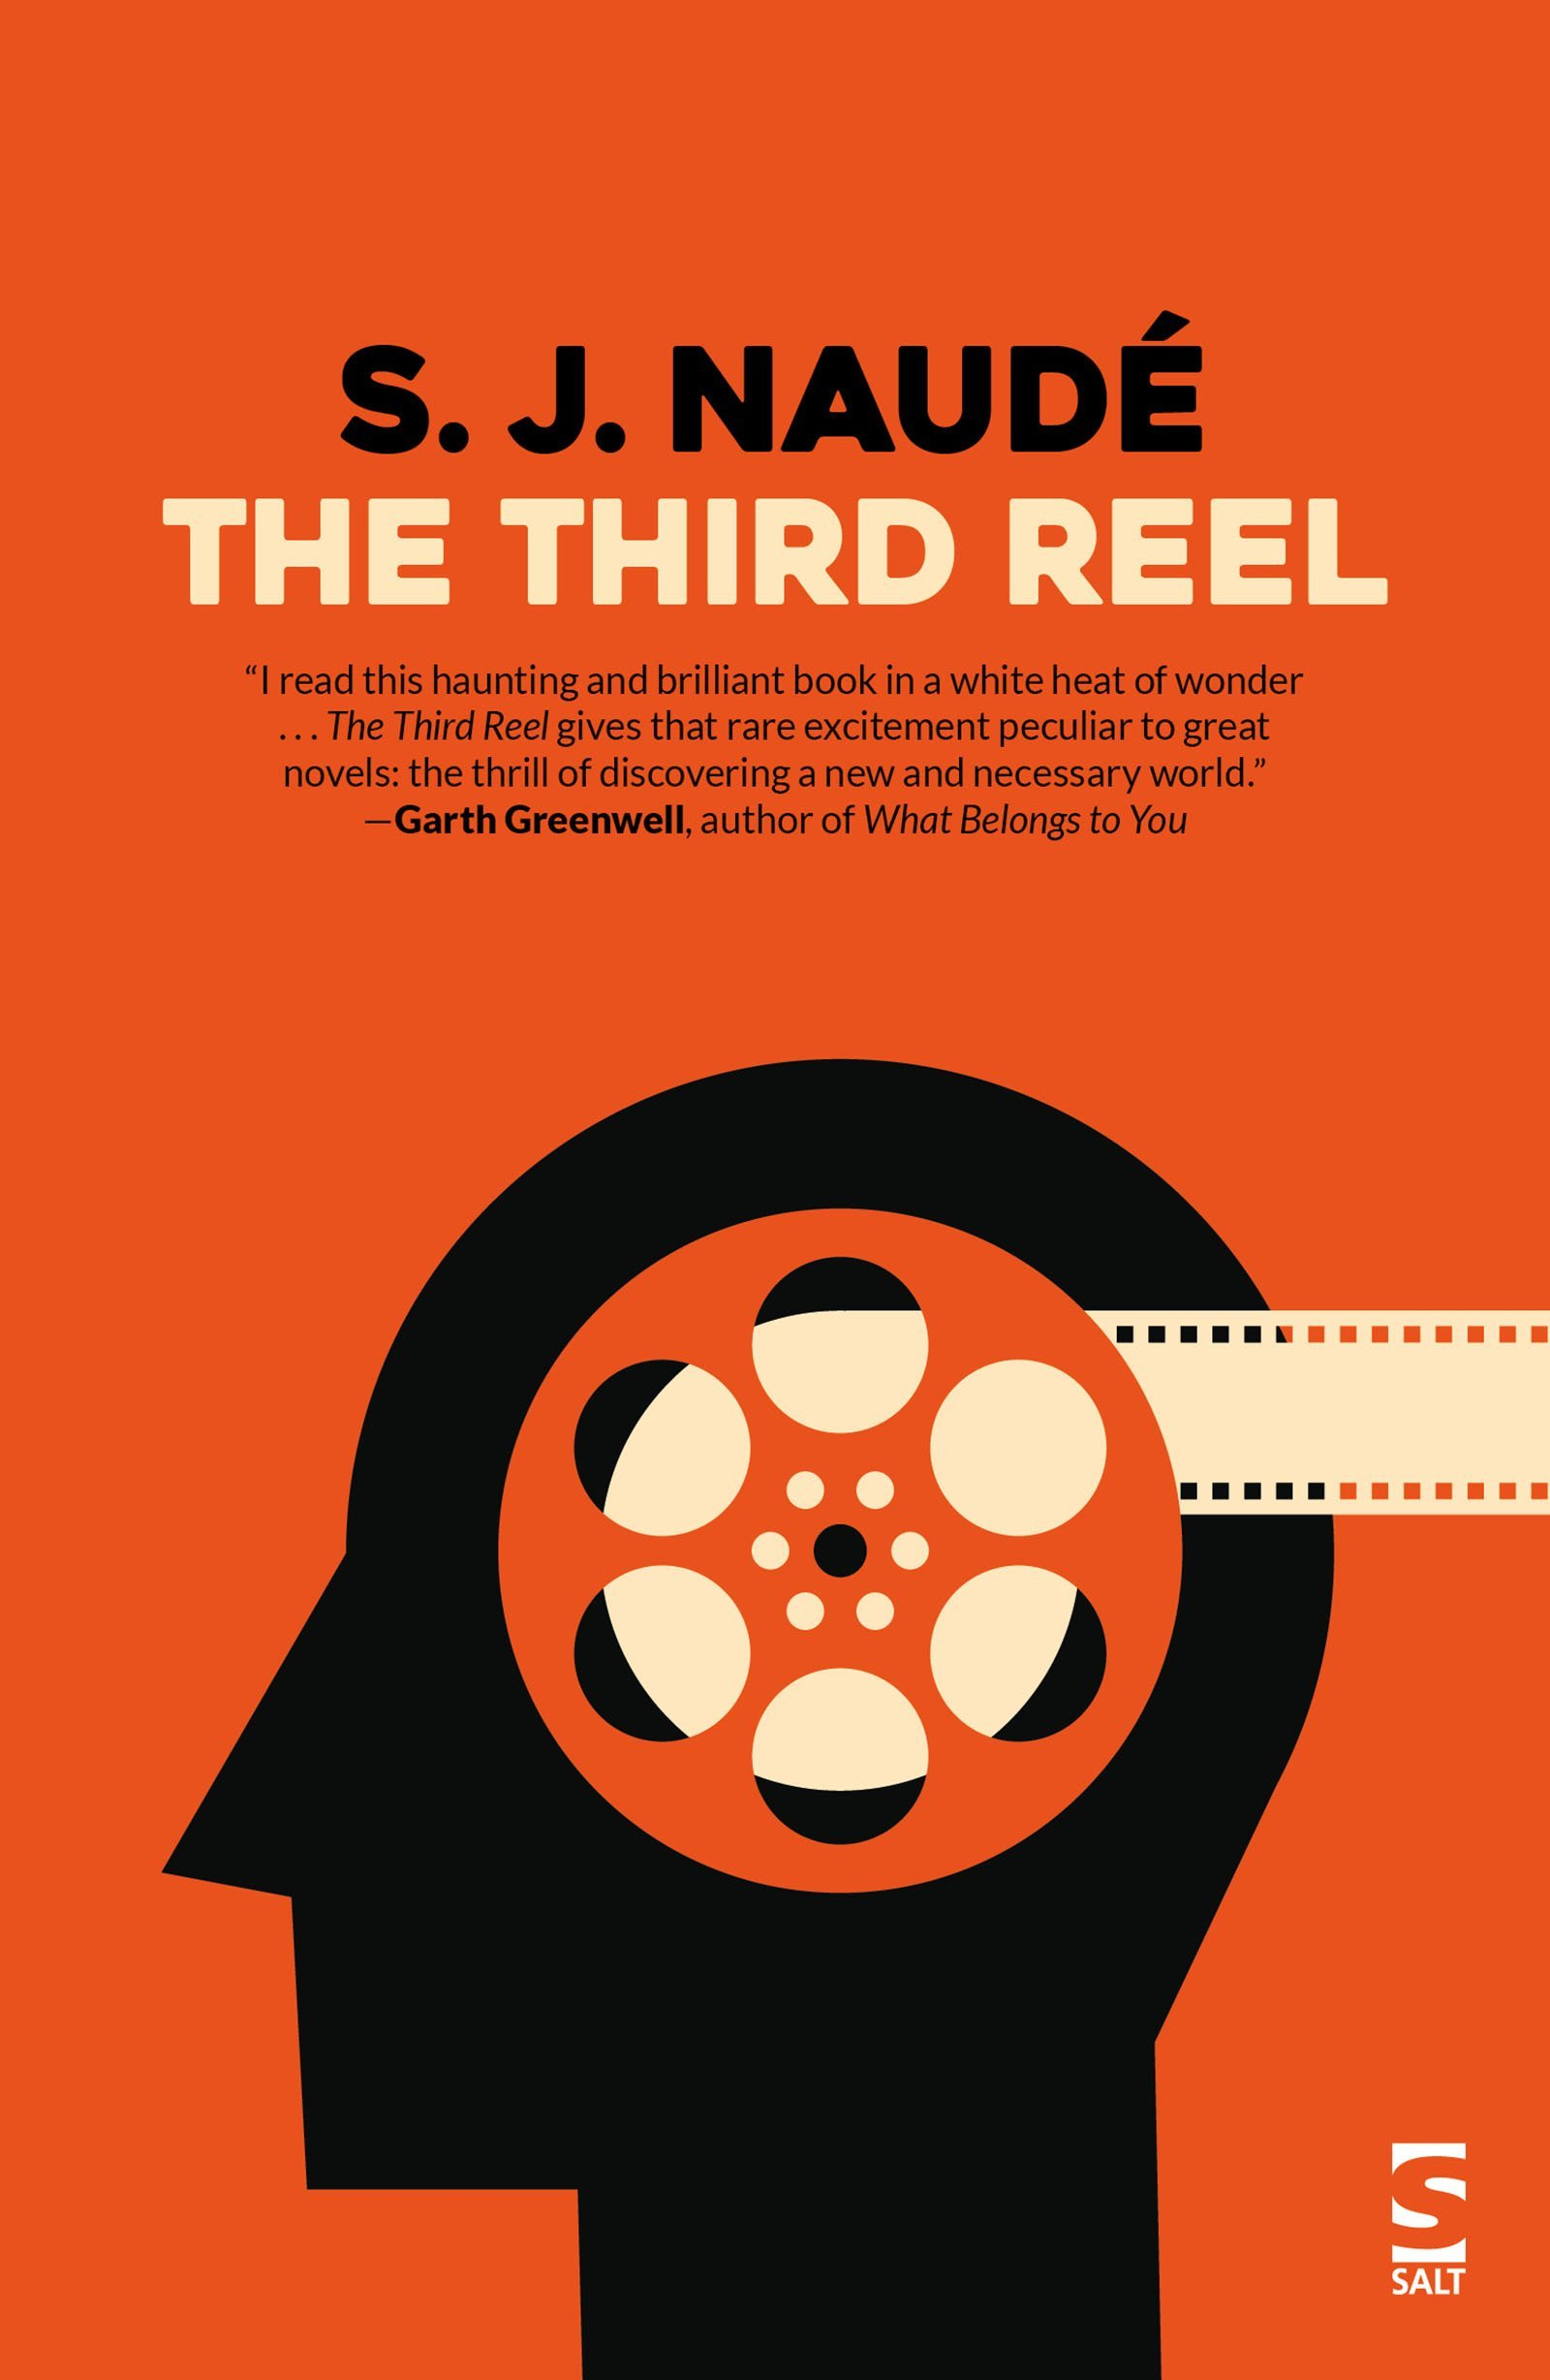 The third reel s j naud salt the third reel by s j naud fandeluxe Image collections